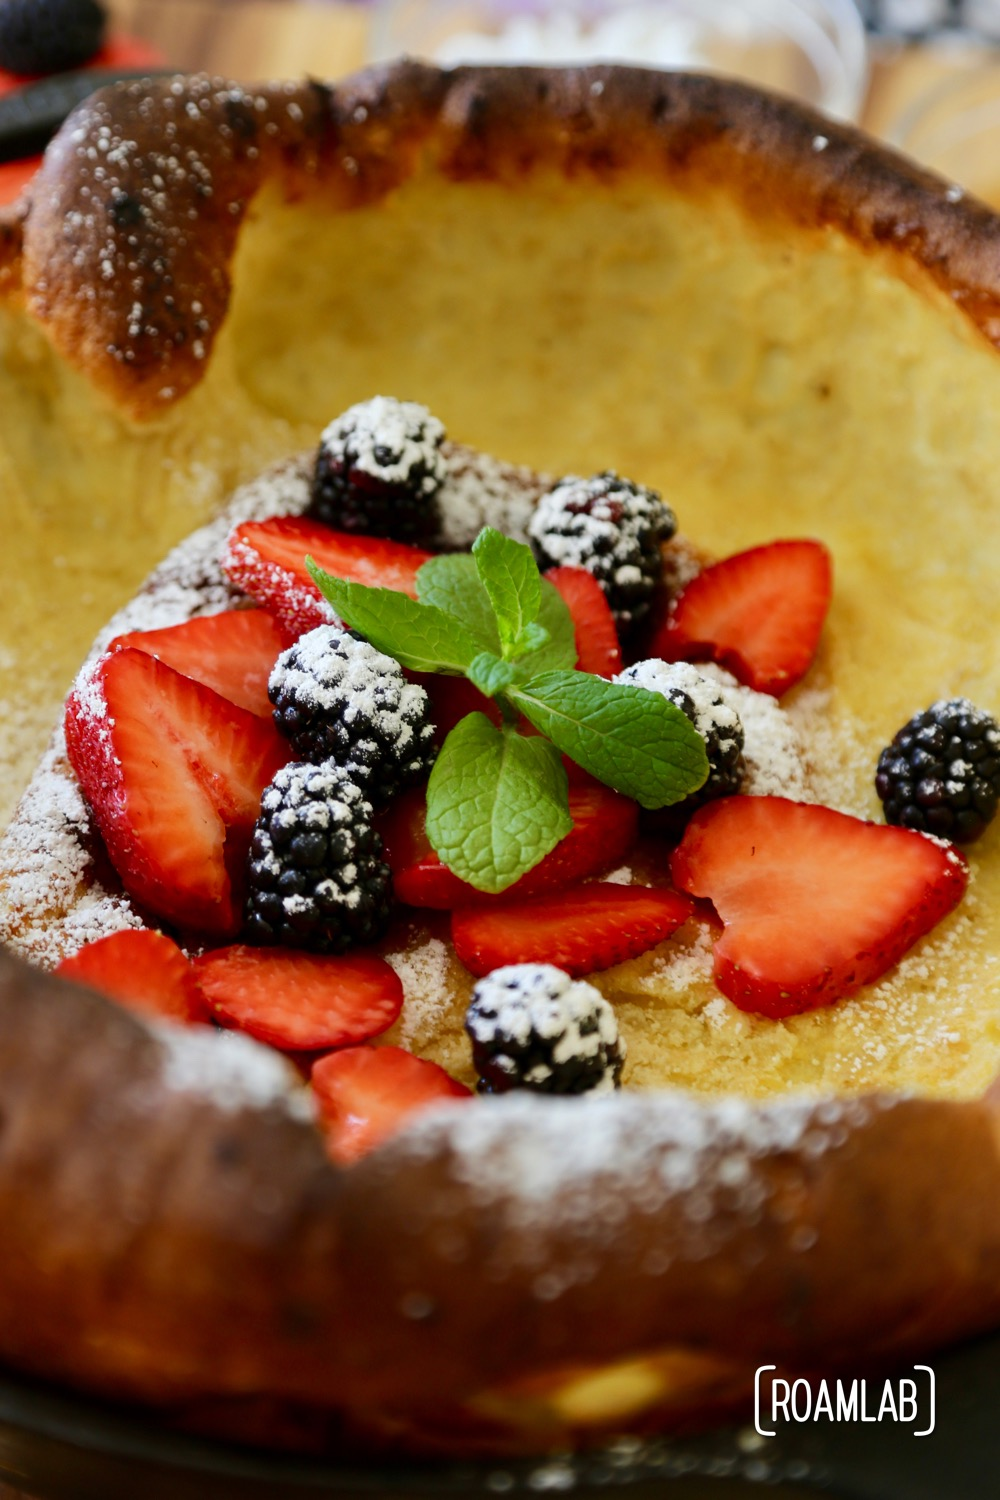 Blackberries, strawberries, powdered sugar and mint on a dutch baby pancake.